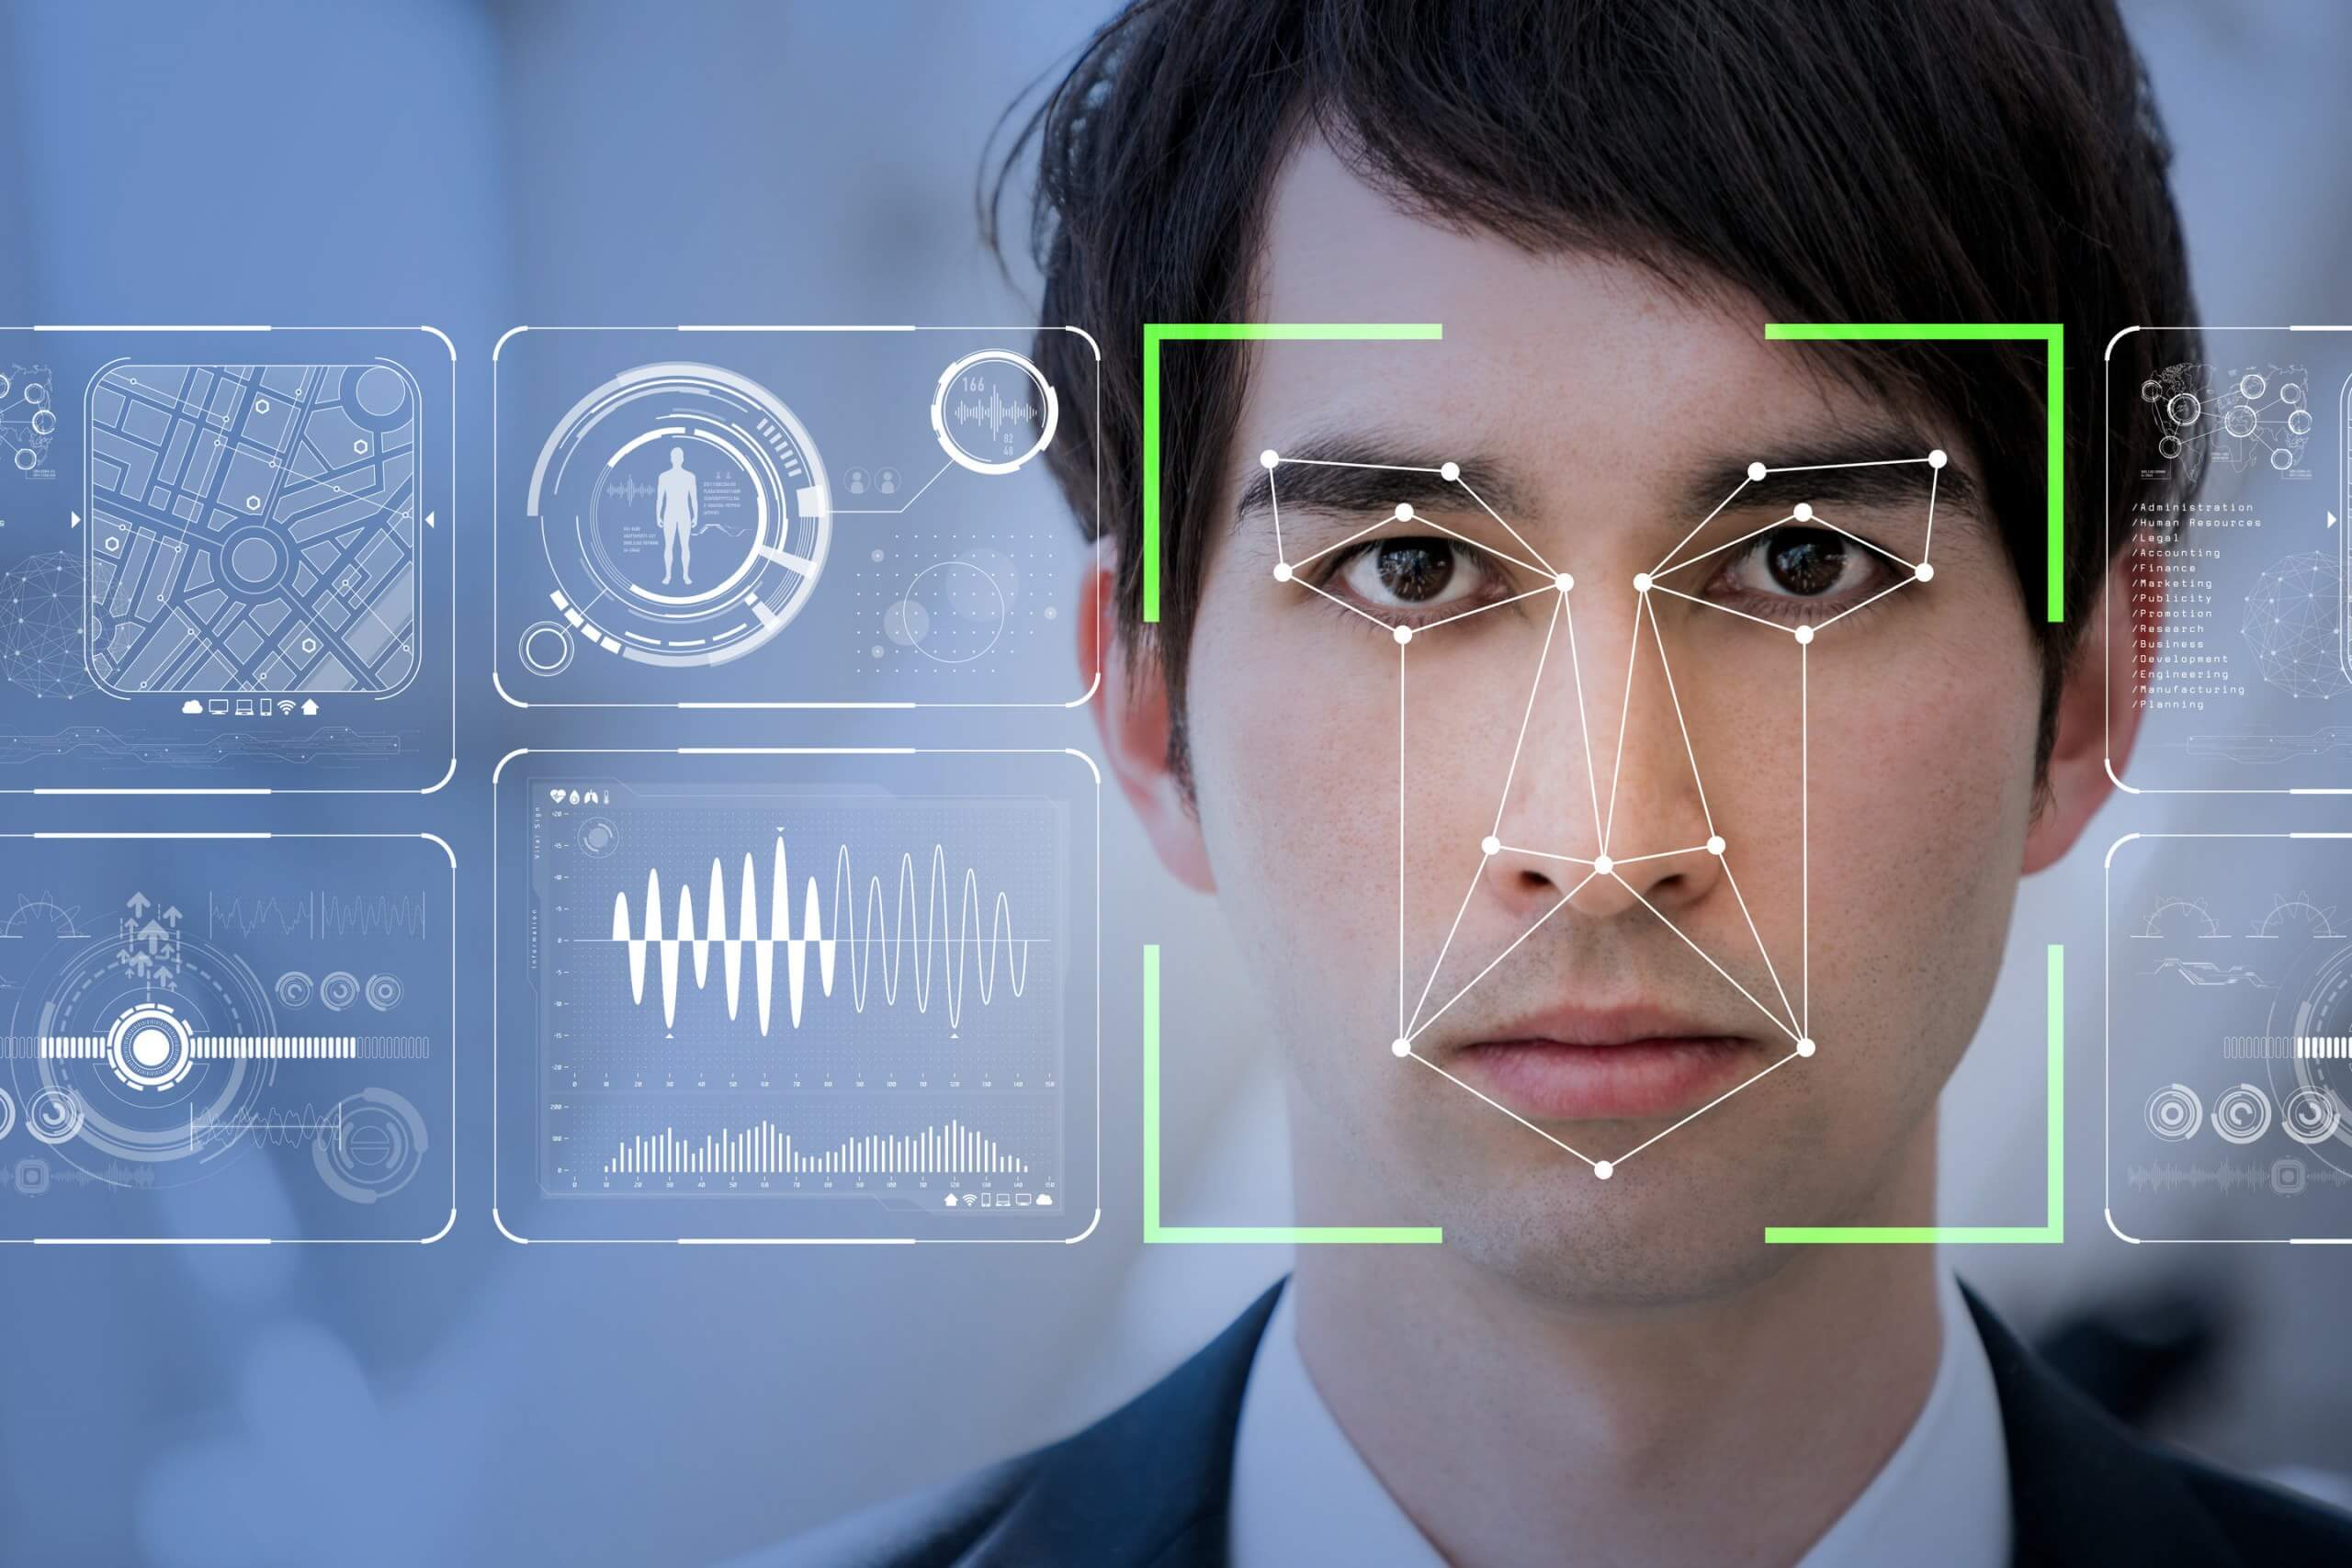 Lawmakers still seeking details on Amazon's facial recognition software